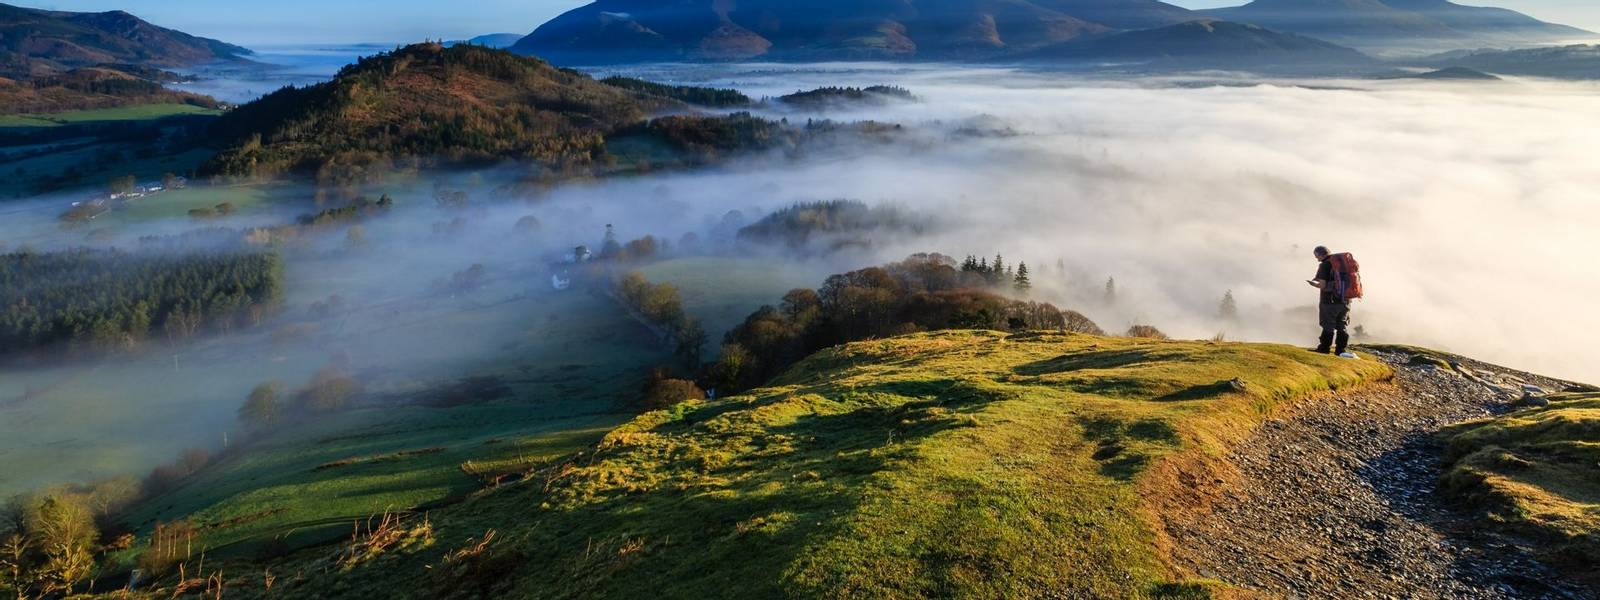 DerwentBank - Cat Bells - AdobeStock_145109641.jpeg